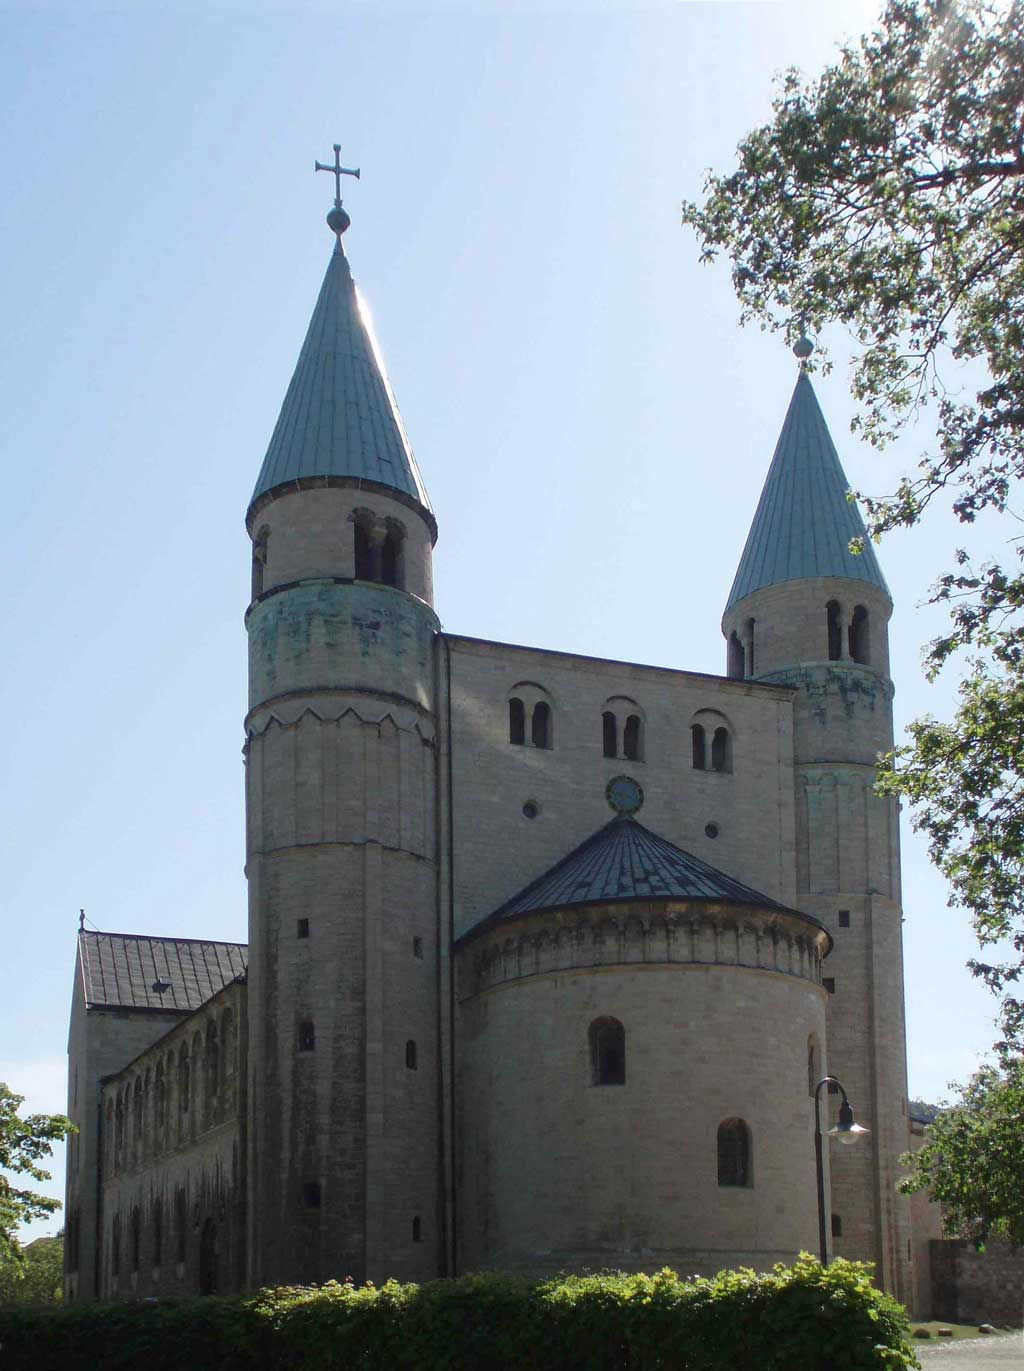 Image of the exterior of St. Cyriakus, Gernrode. From this perspective, the viewer sees the round arcade of the cathedral and the two steeples above it.